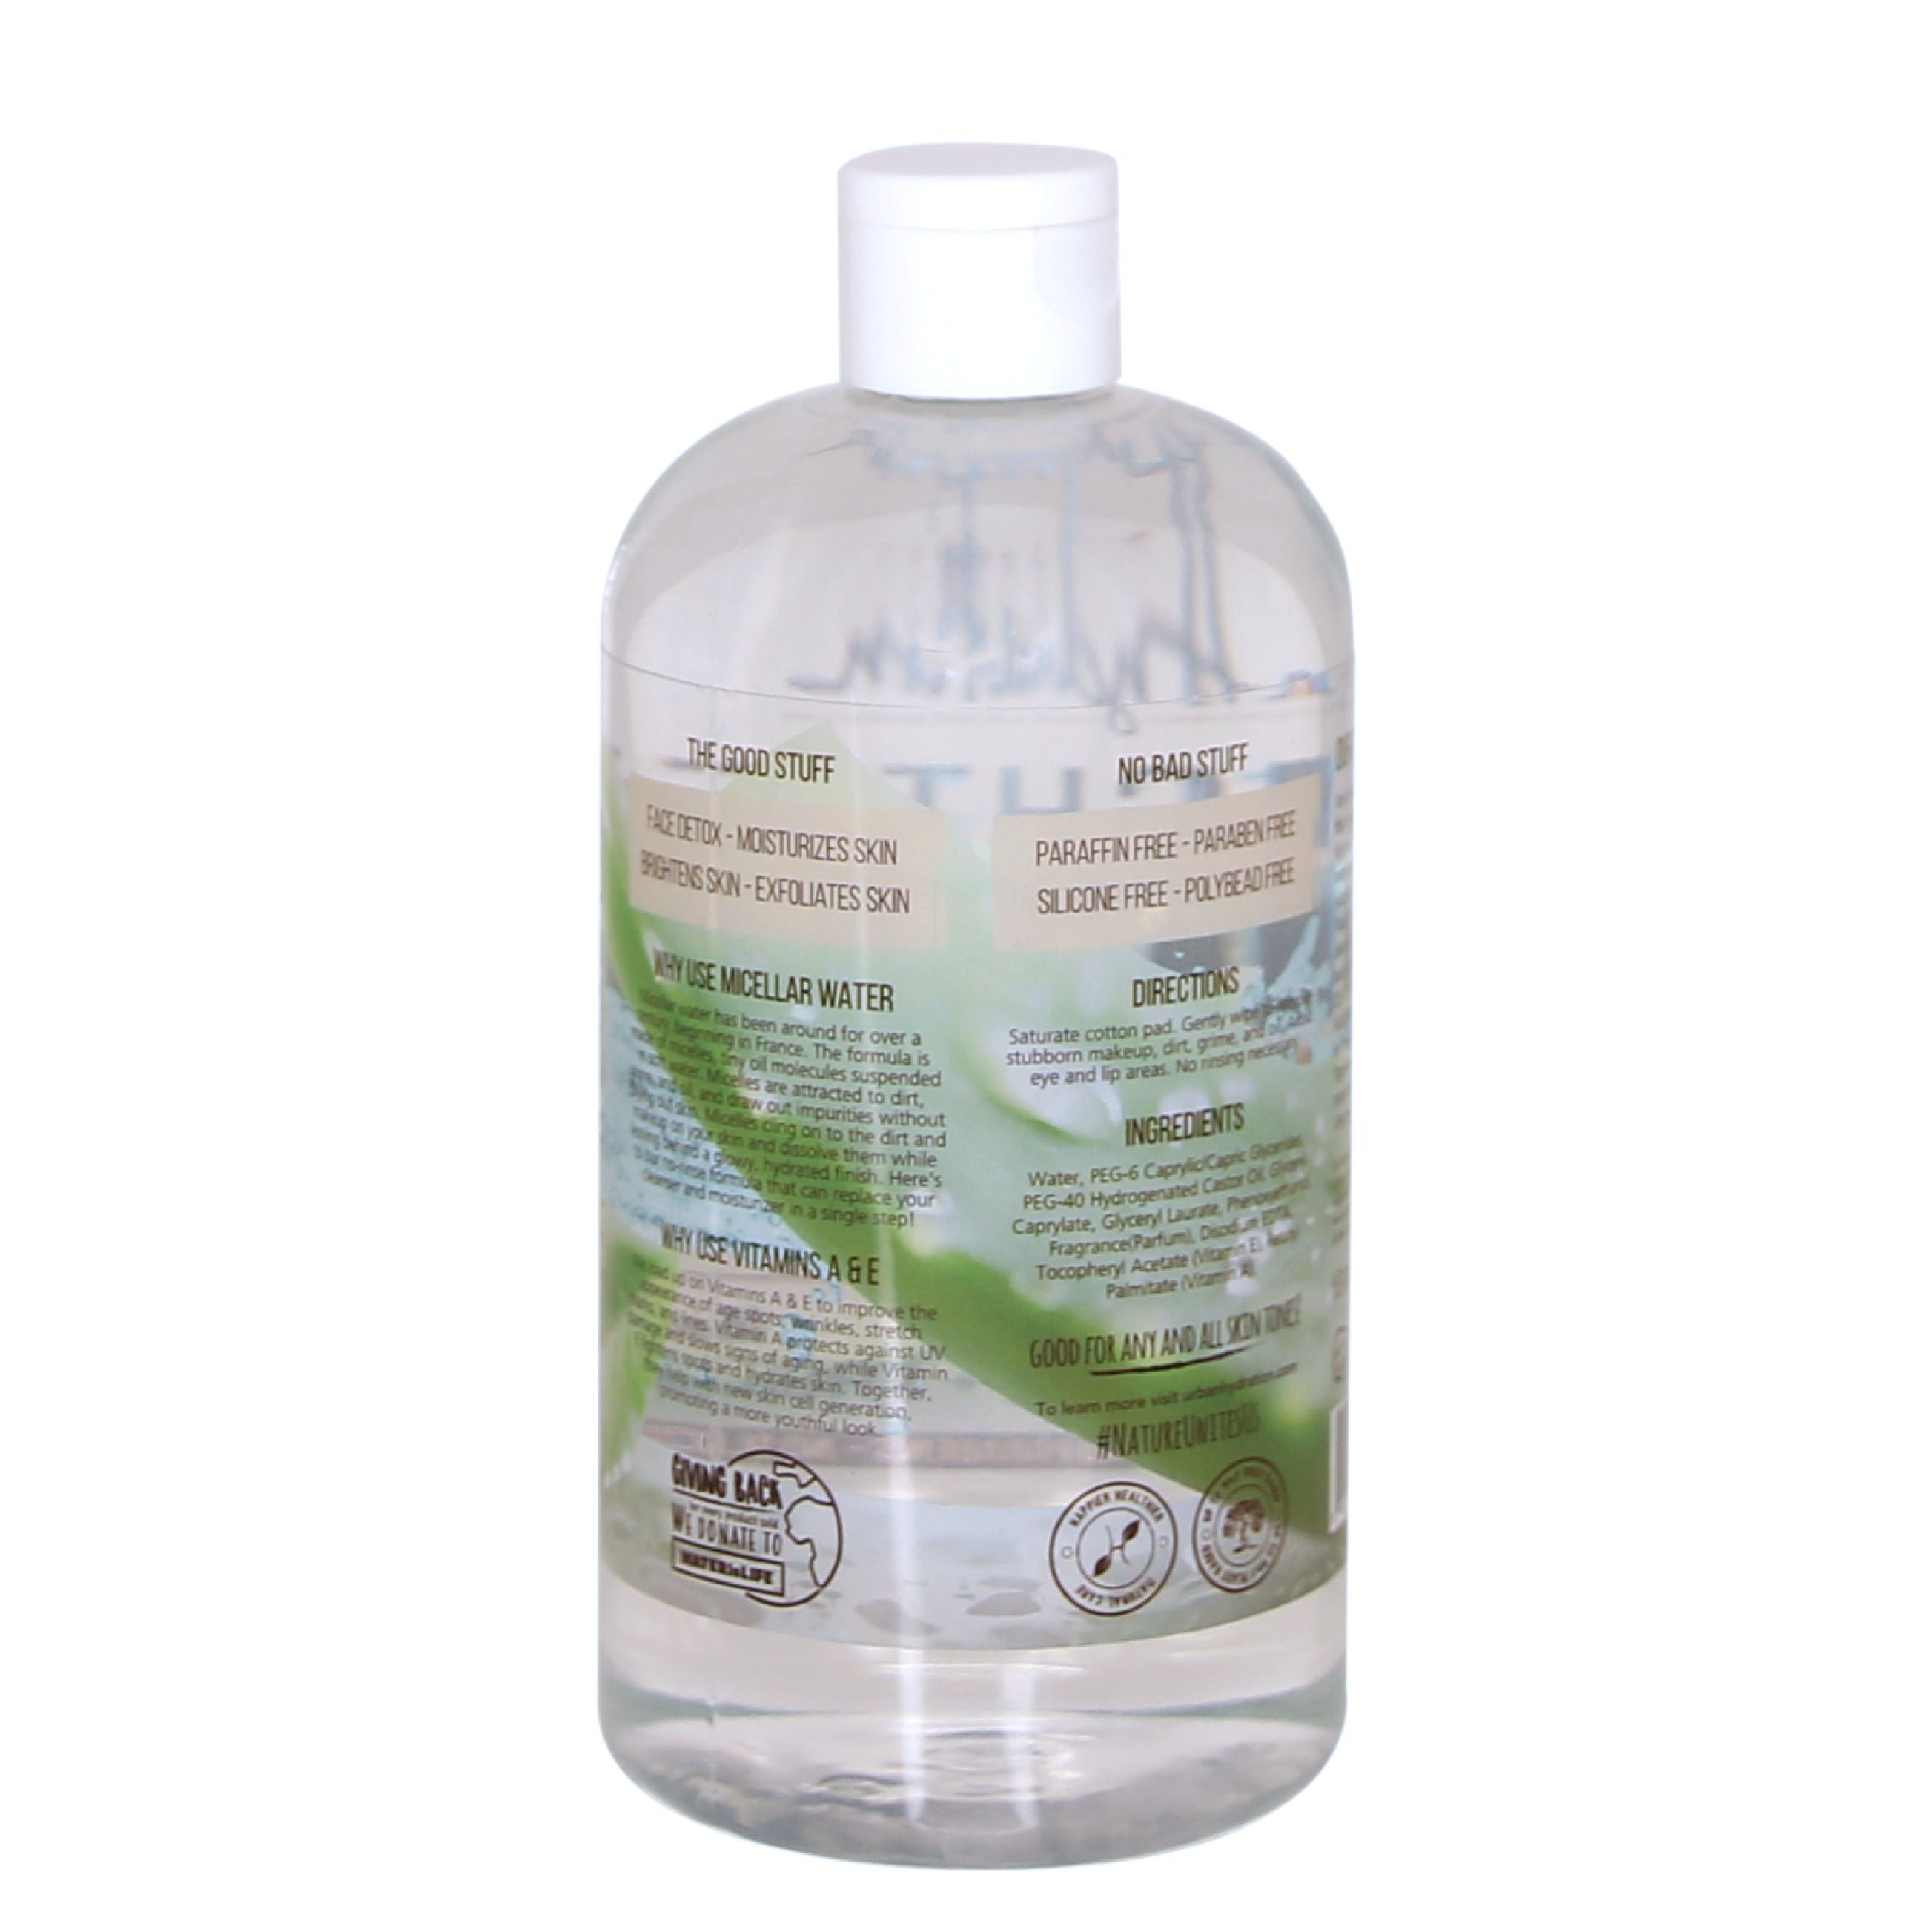 Bright & Balanced Aloe Vera Leaf Micellar Water